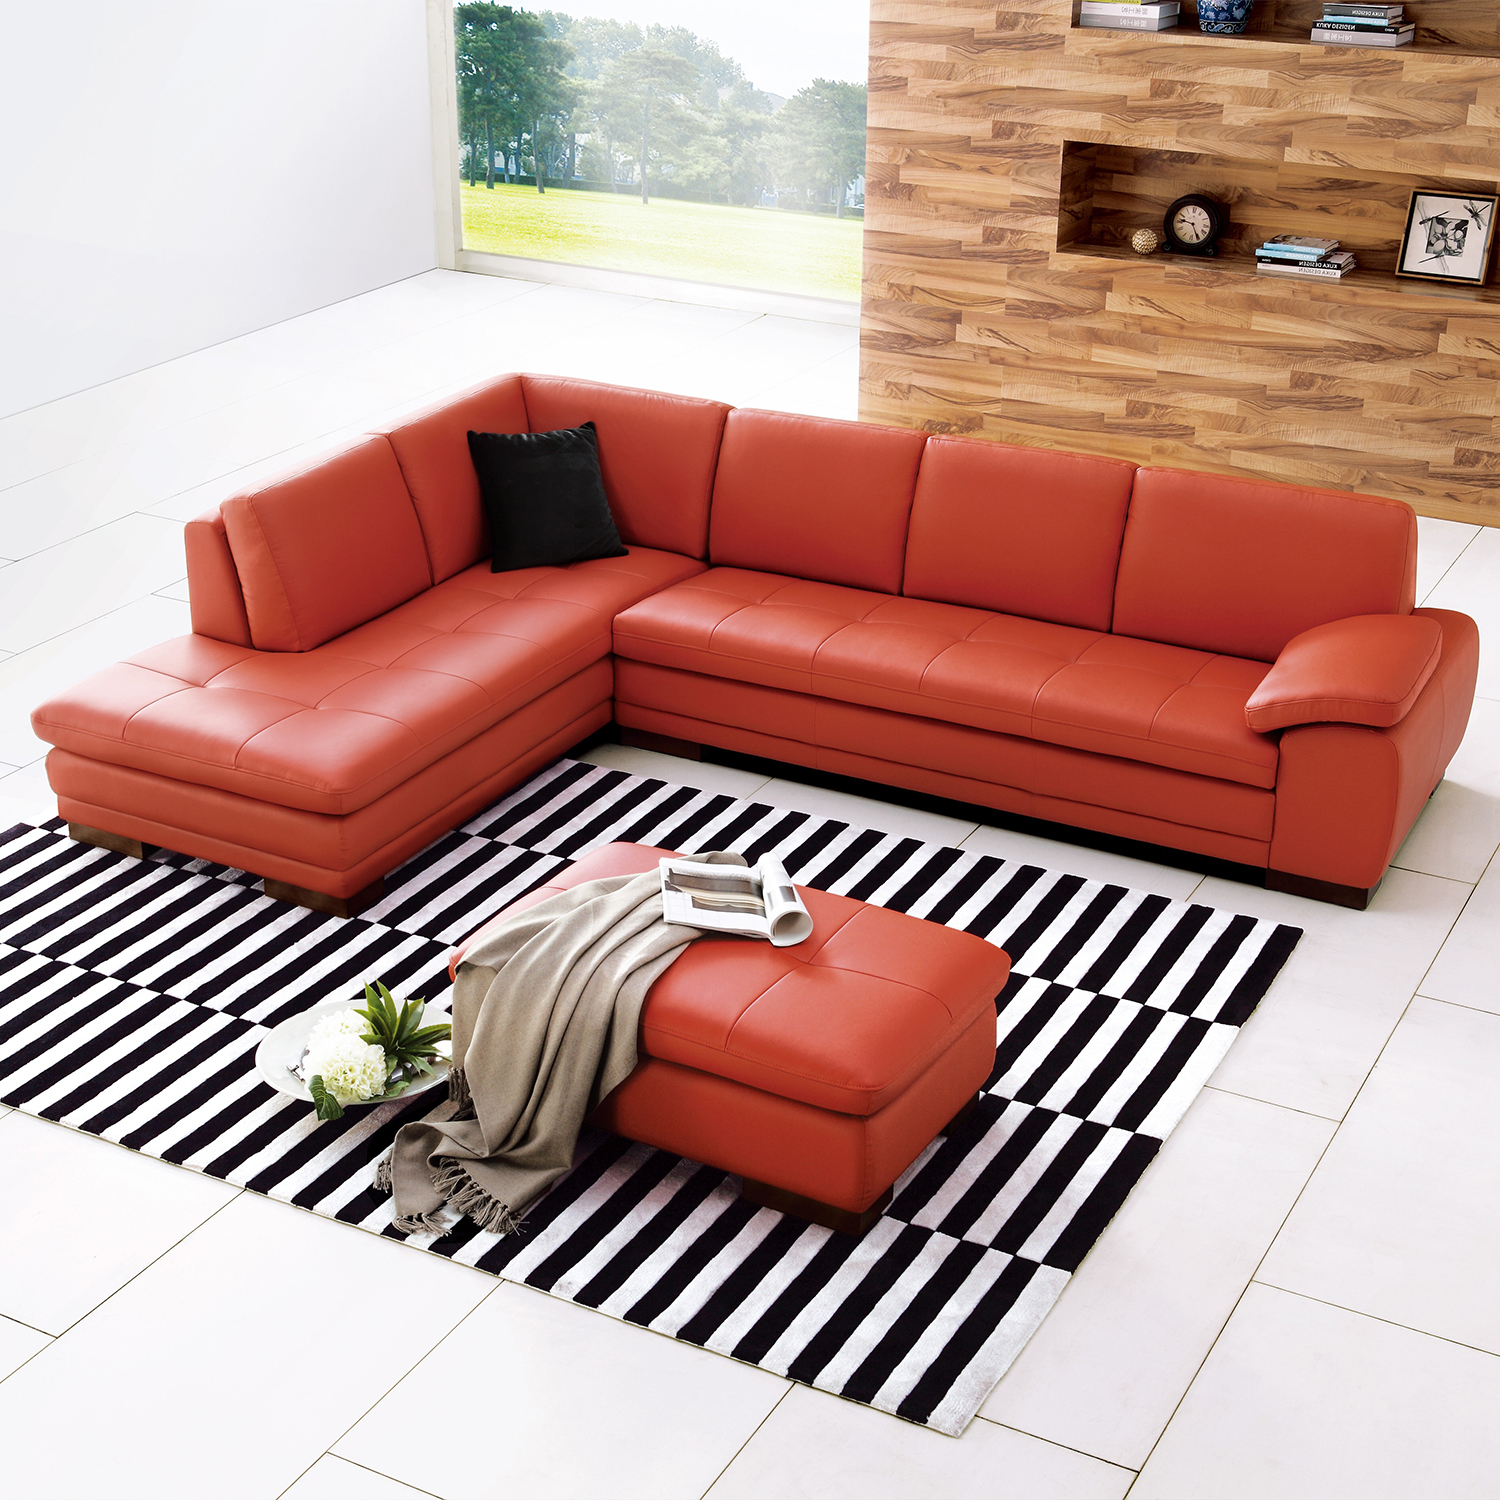 image p top grain orange full sectional modern italian sofa leather